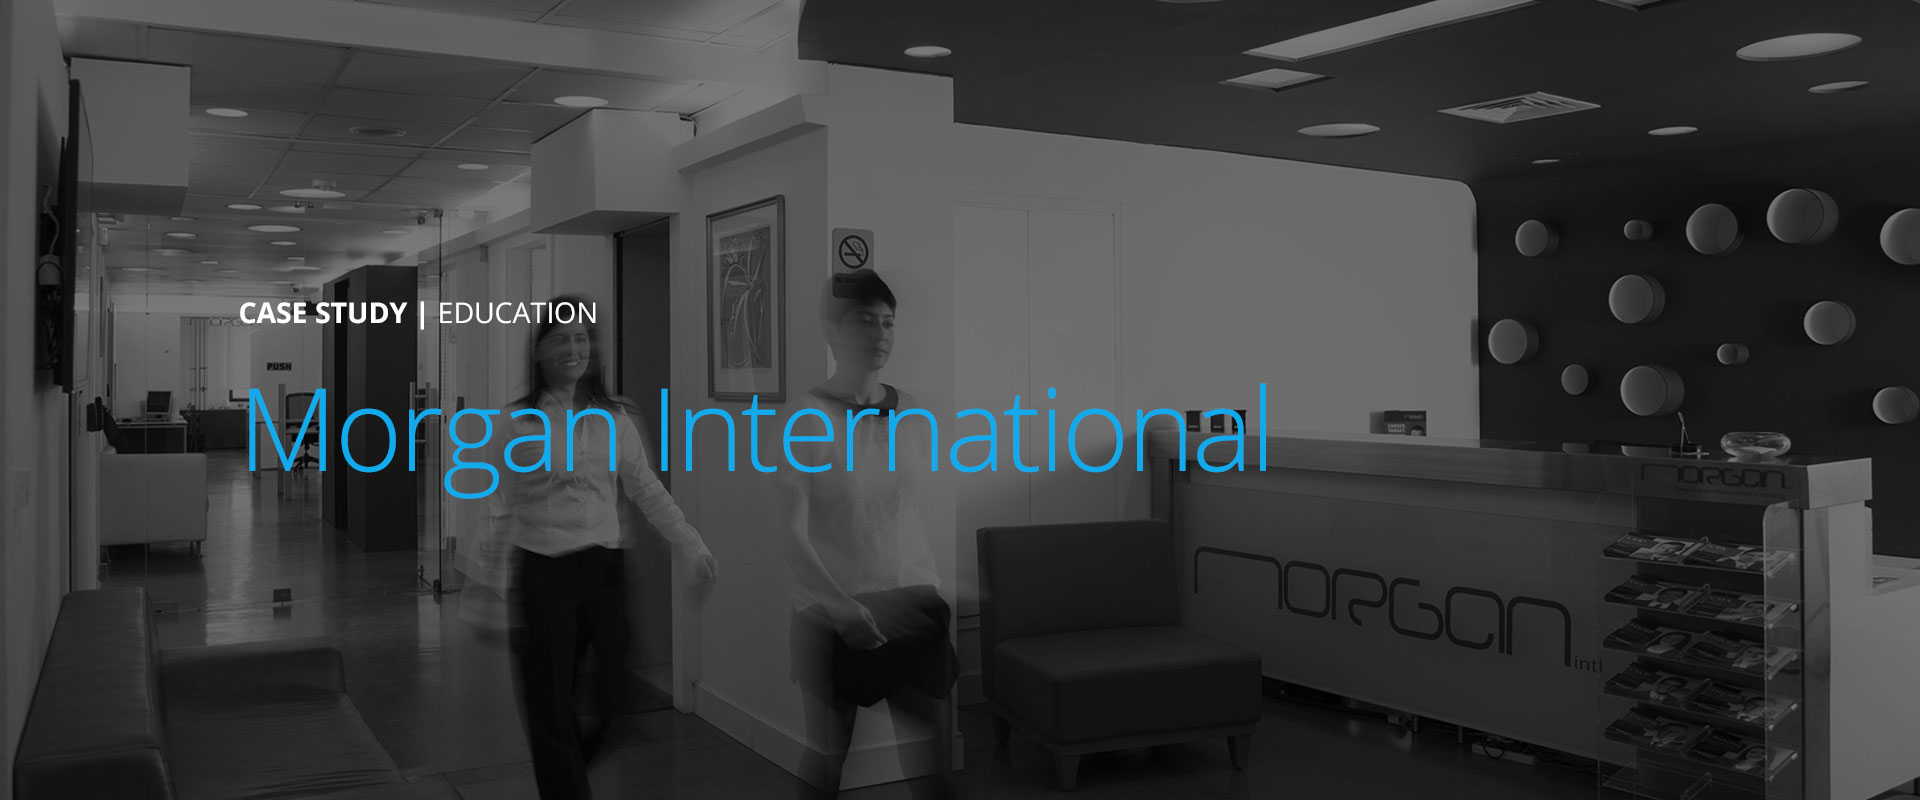 Case Study - Morgan International | Education Partner